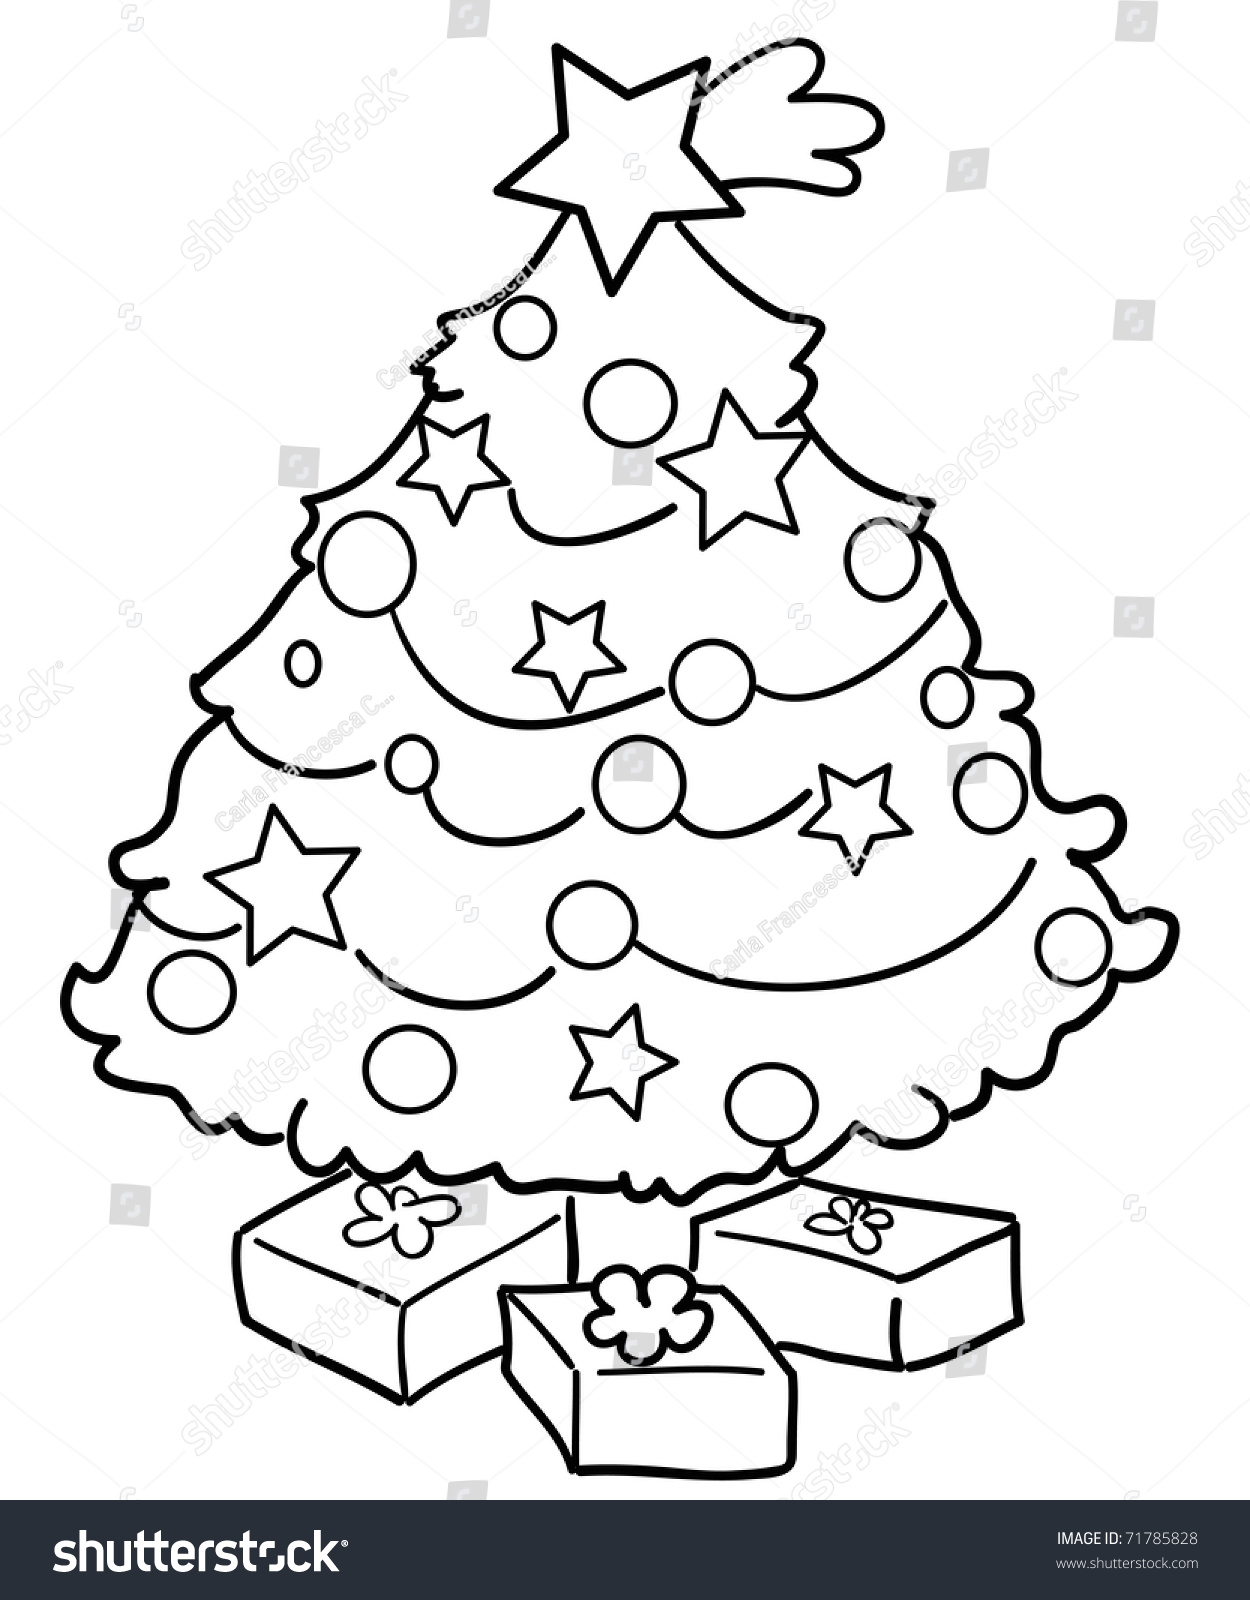 Christmas tree drawing black and white - A Black And White Illustration Of A Christmas Tree With Gifts